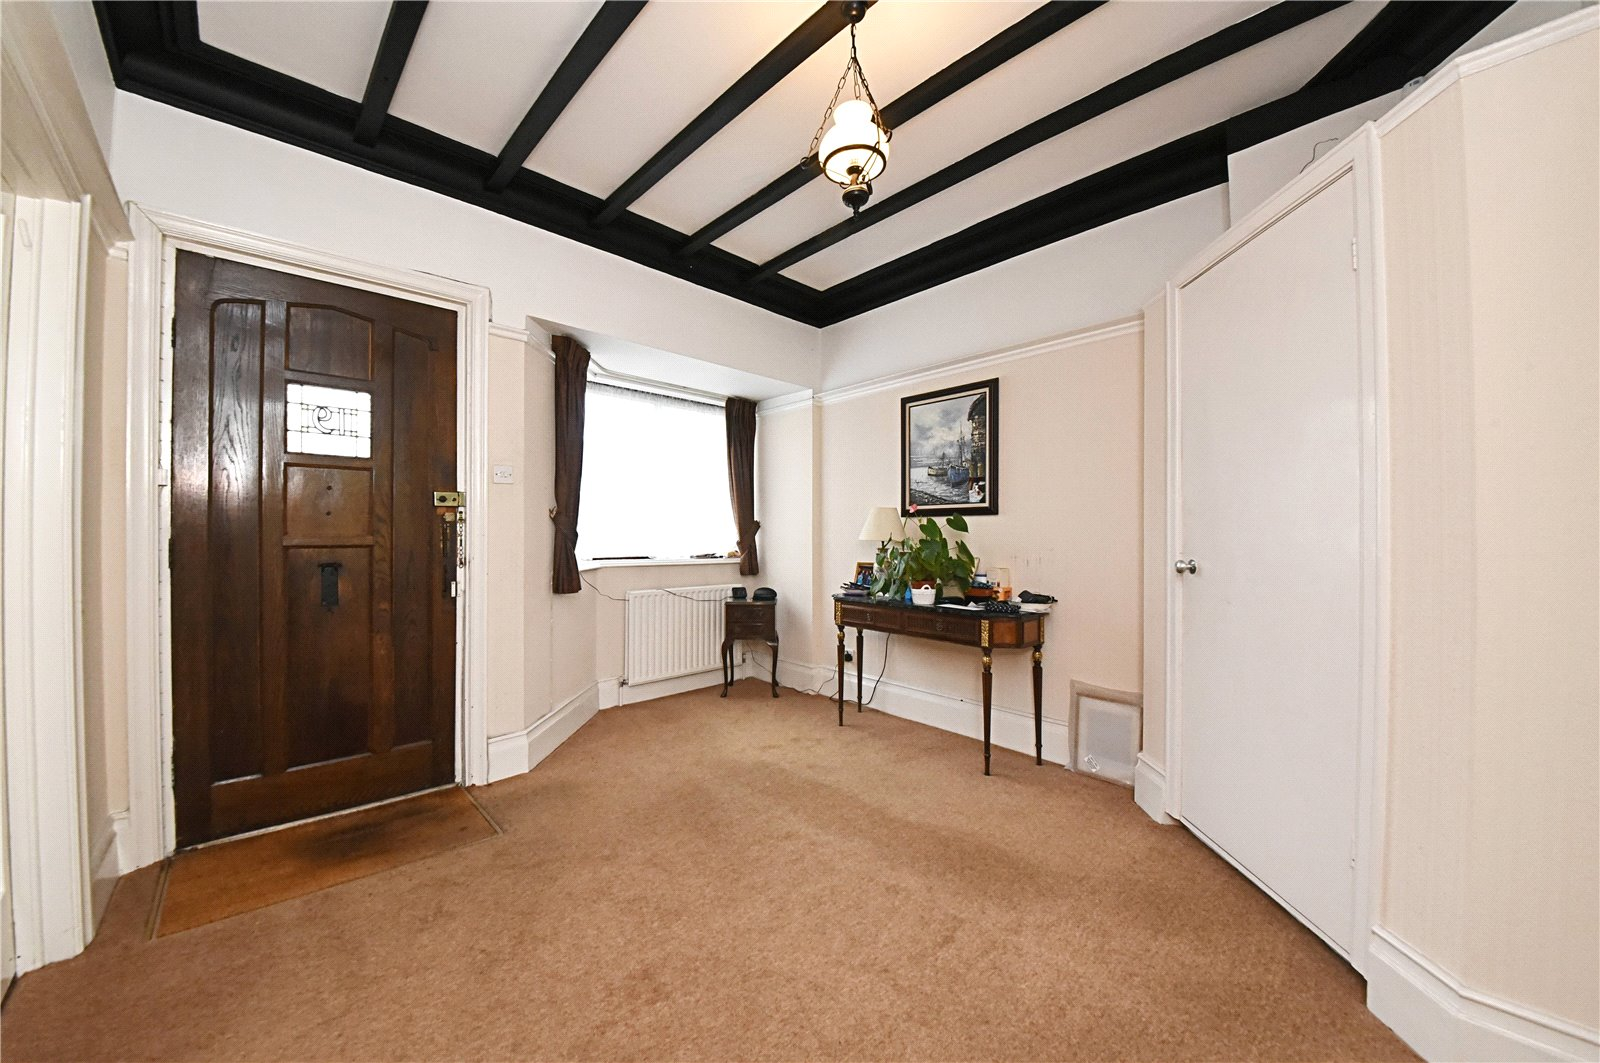 4 bed house for sale in Chandos Avenue, Whetstone  - Property Image 4